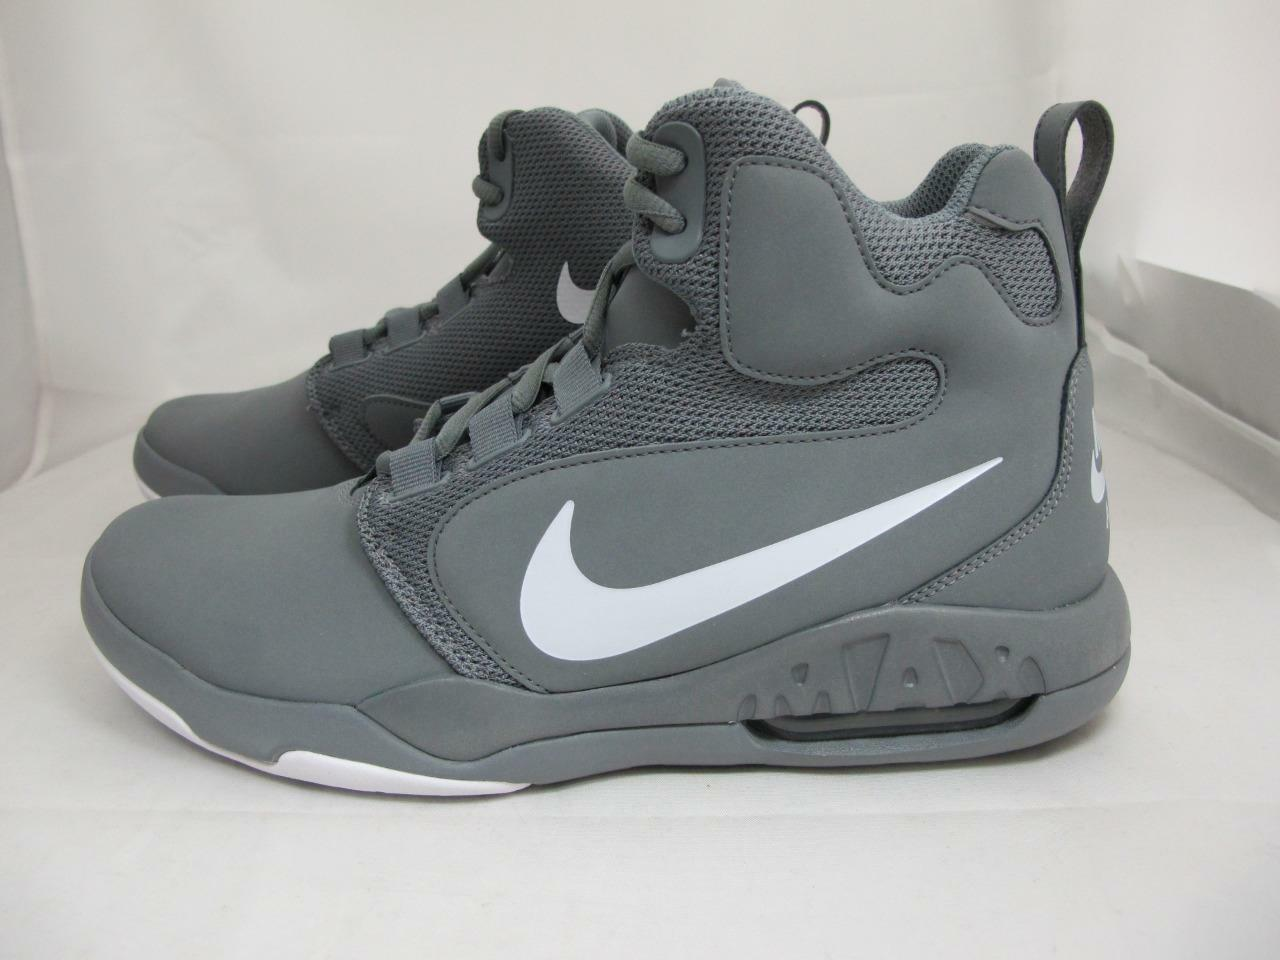 NEW MEN'S NIKE AIR CONVERSION 861678-001